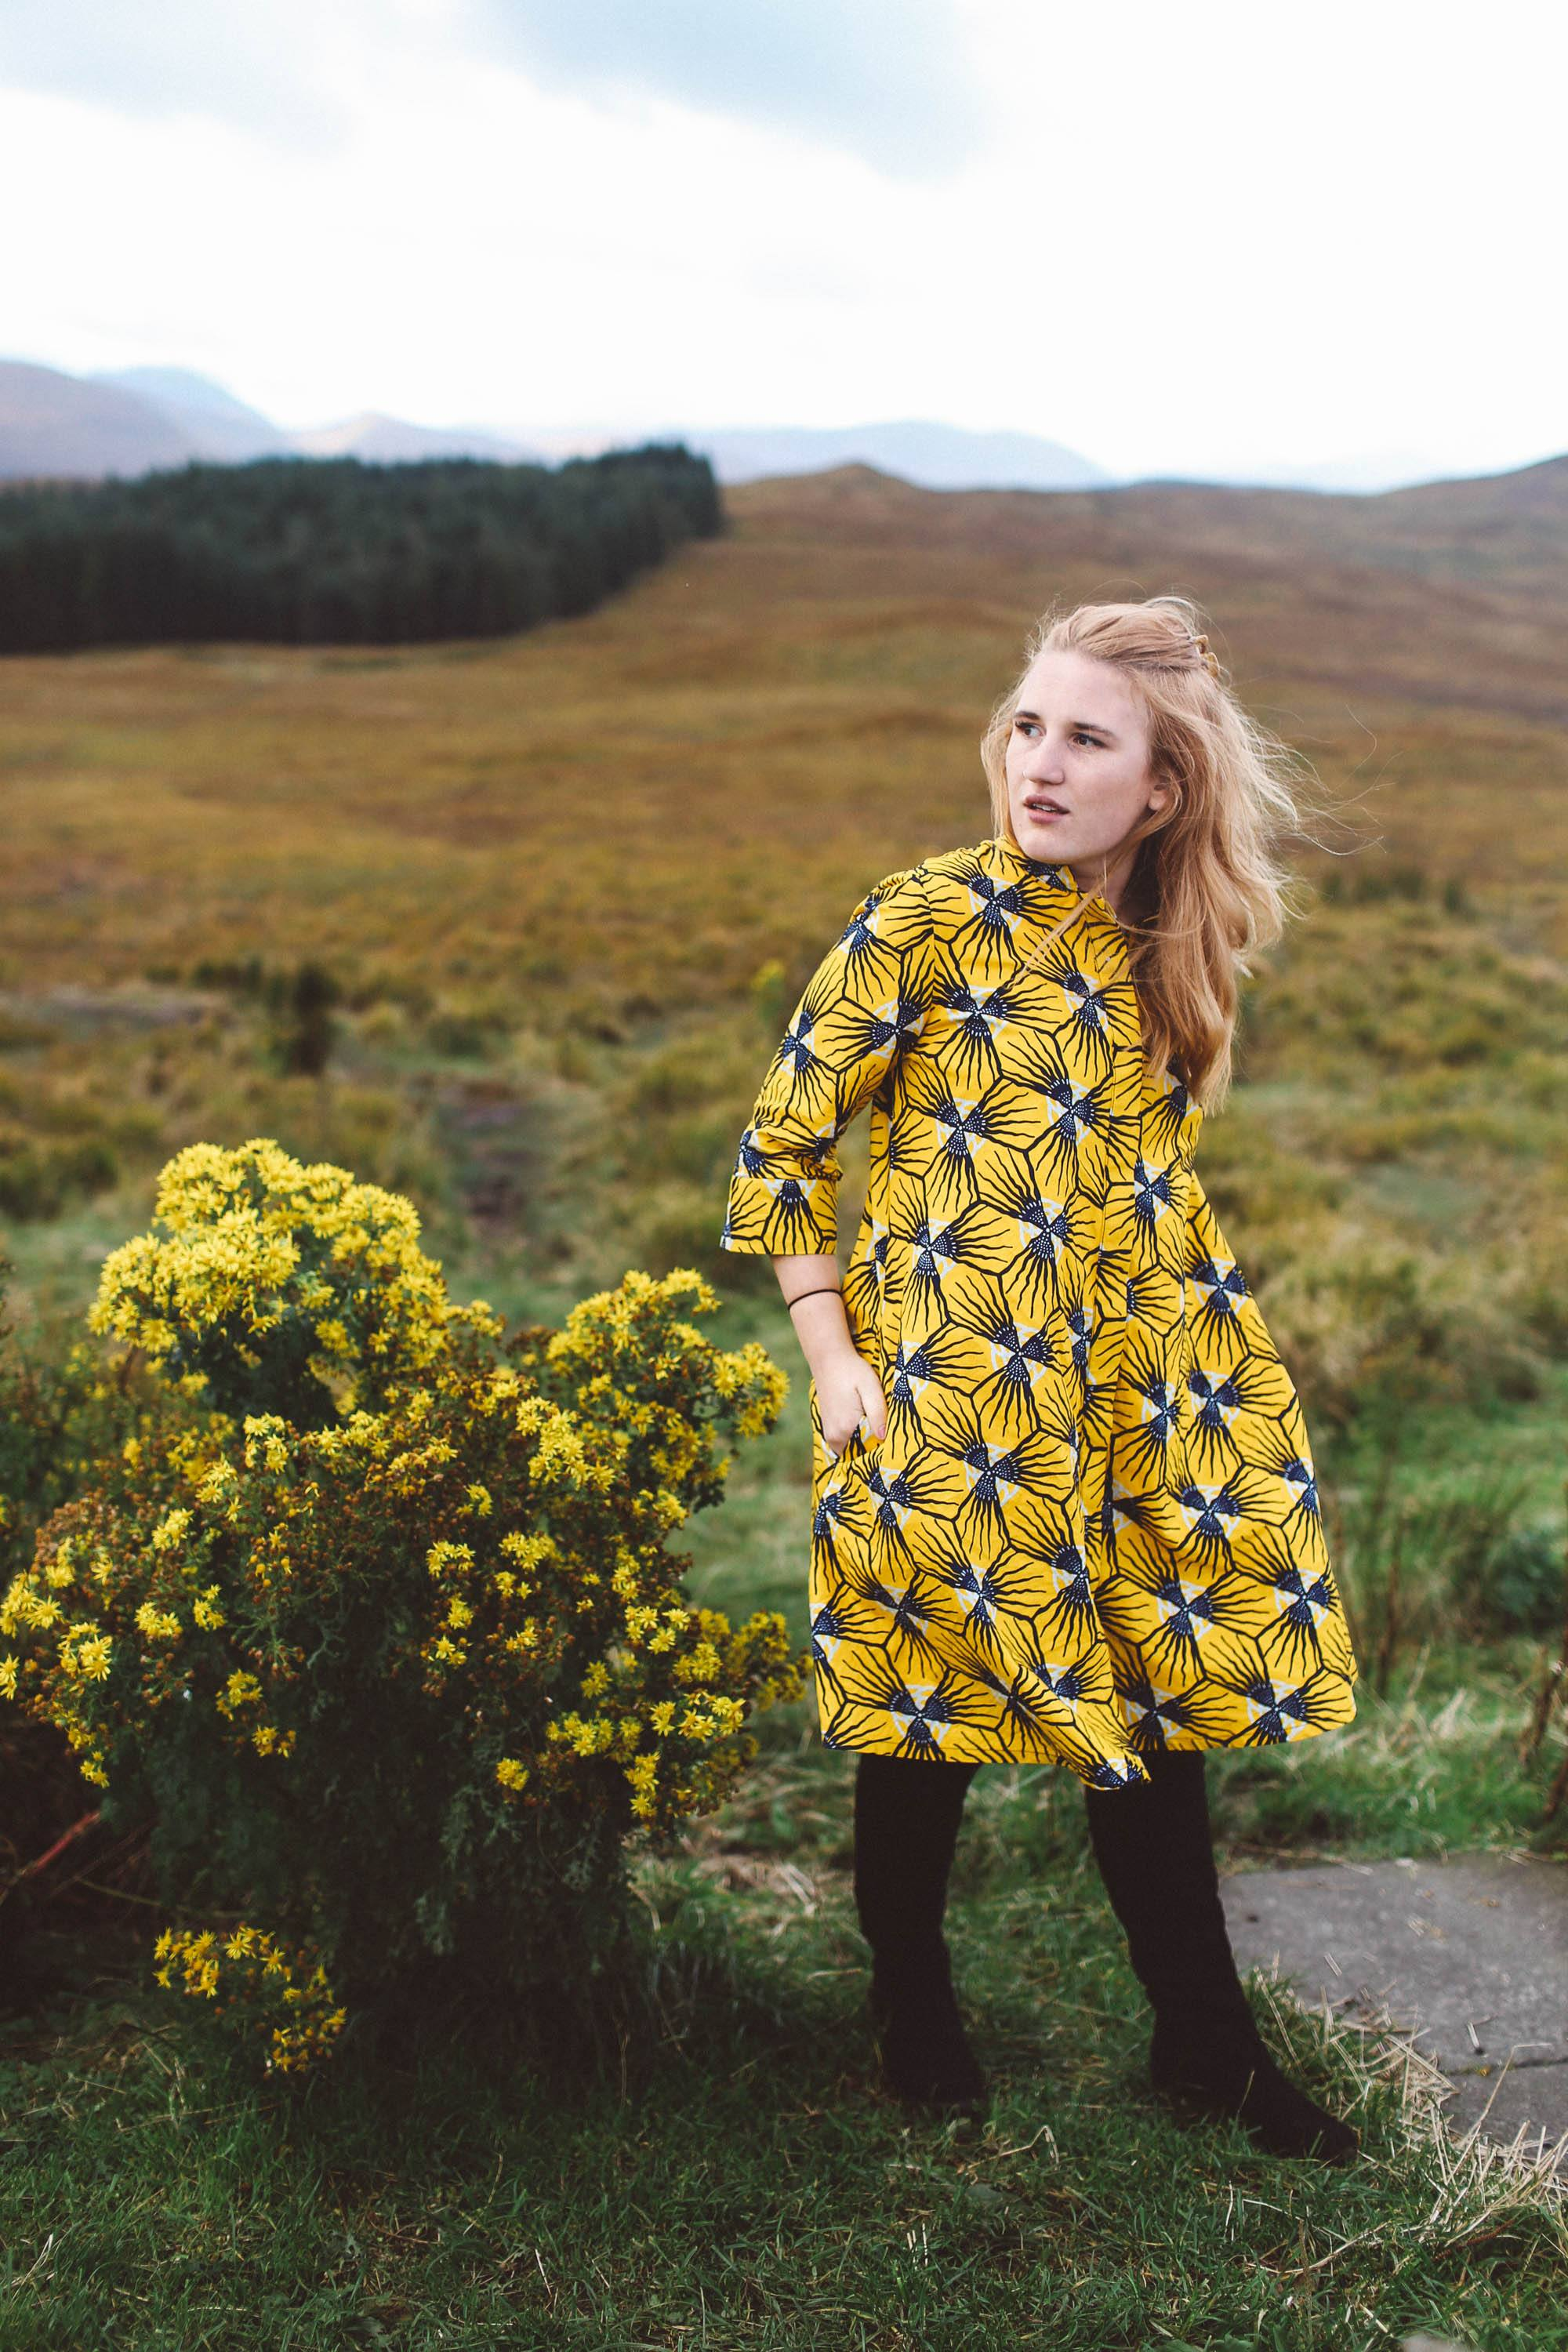 isle of skye scotland woman yellow dress